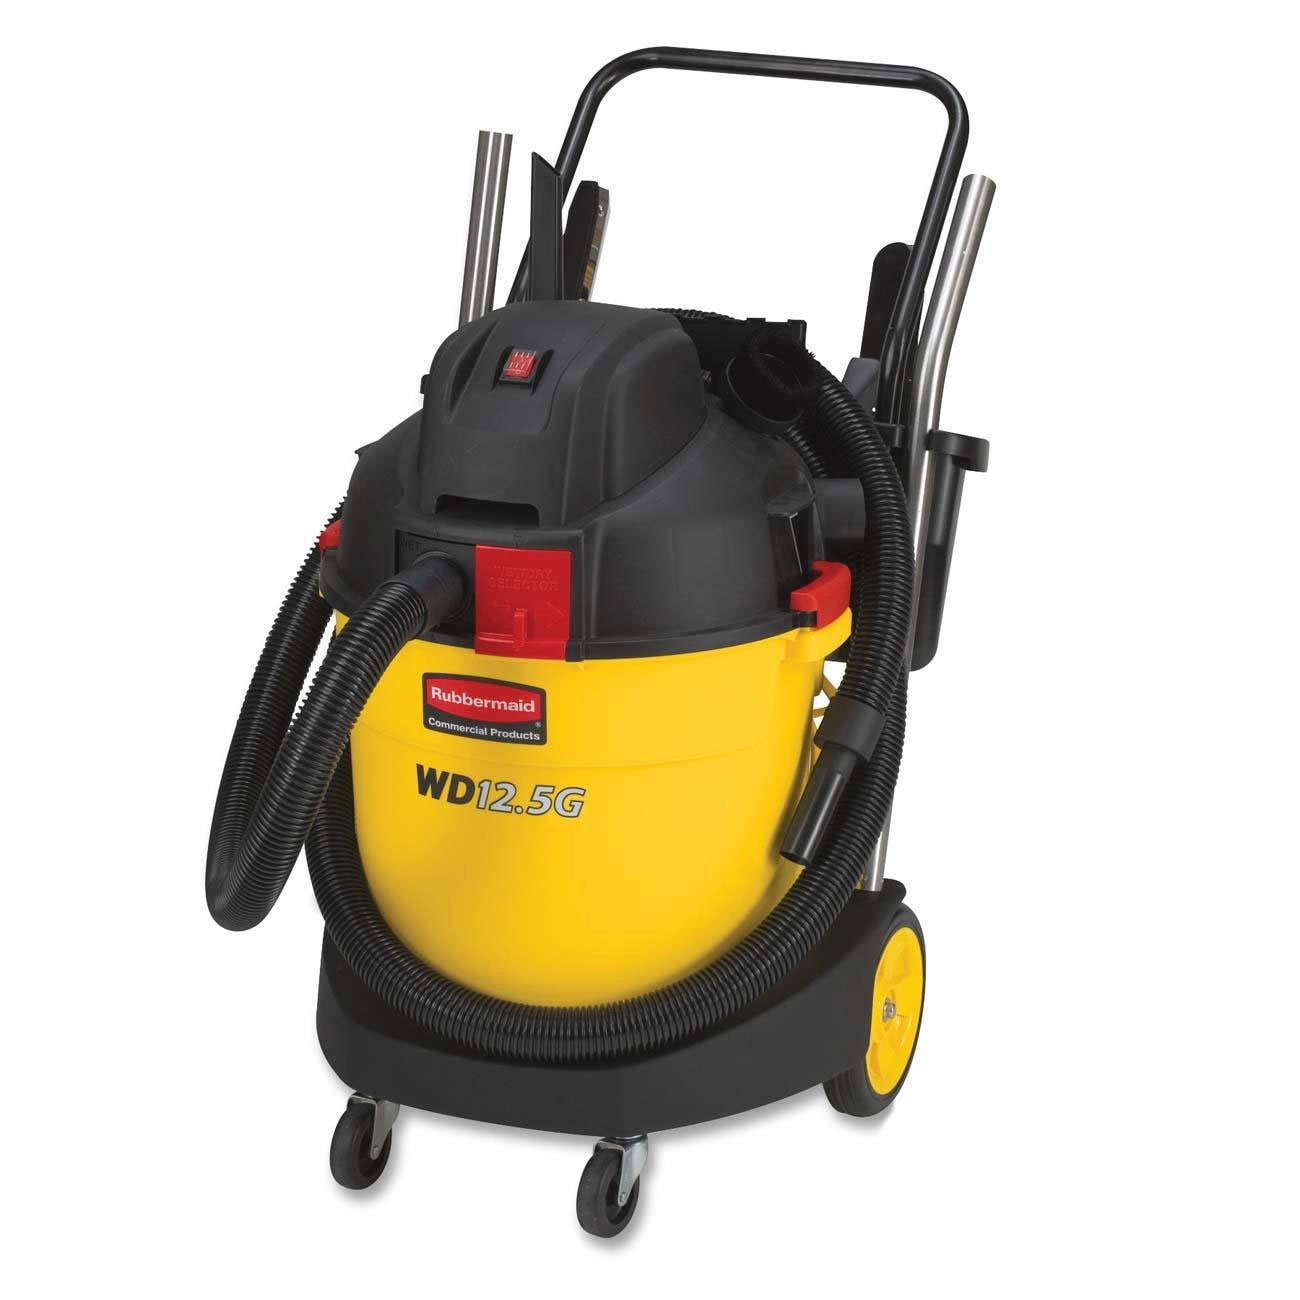 Rubbermaid Commercial 12.5-Gallon Wet and Dry Vacuum Cleaner, 27.6-Inch Depth x 20.3-Inch Width x 35.9-Inch Height (FG9VWD120000)